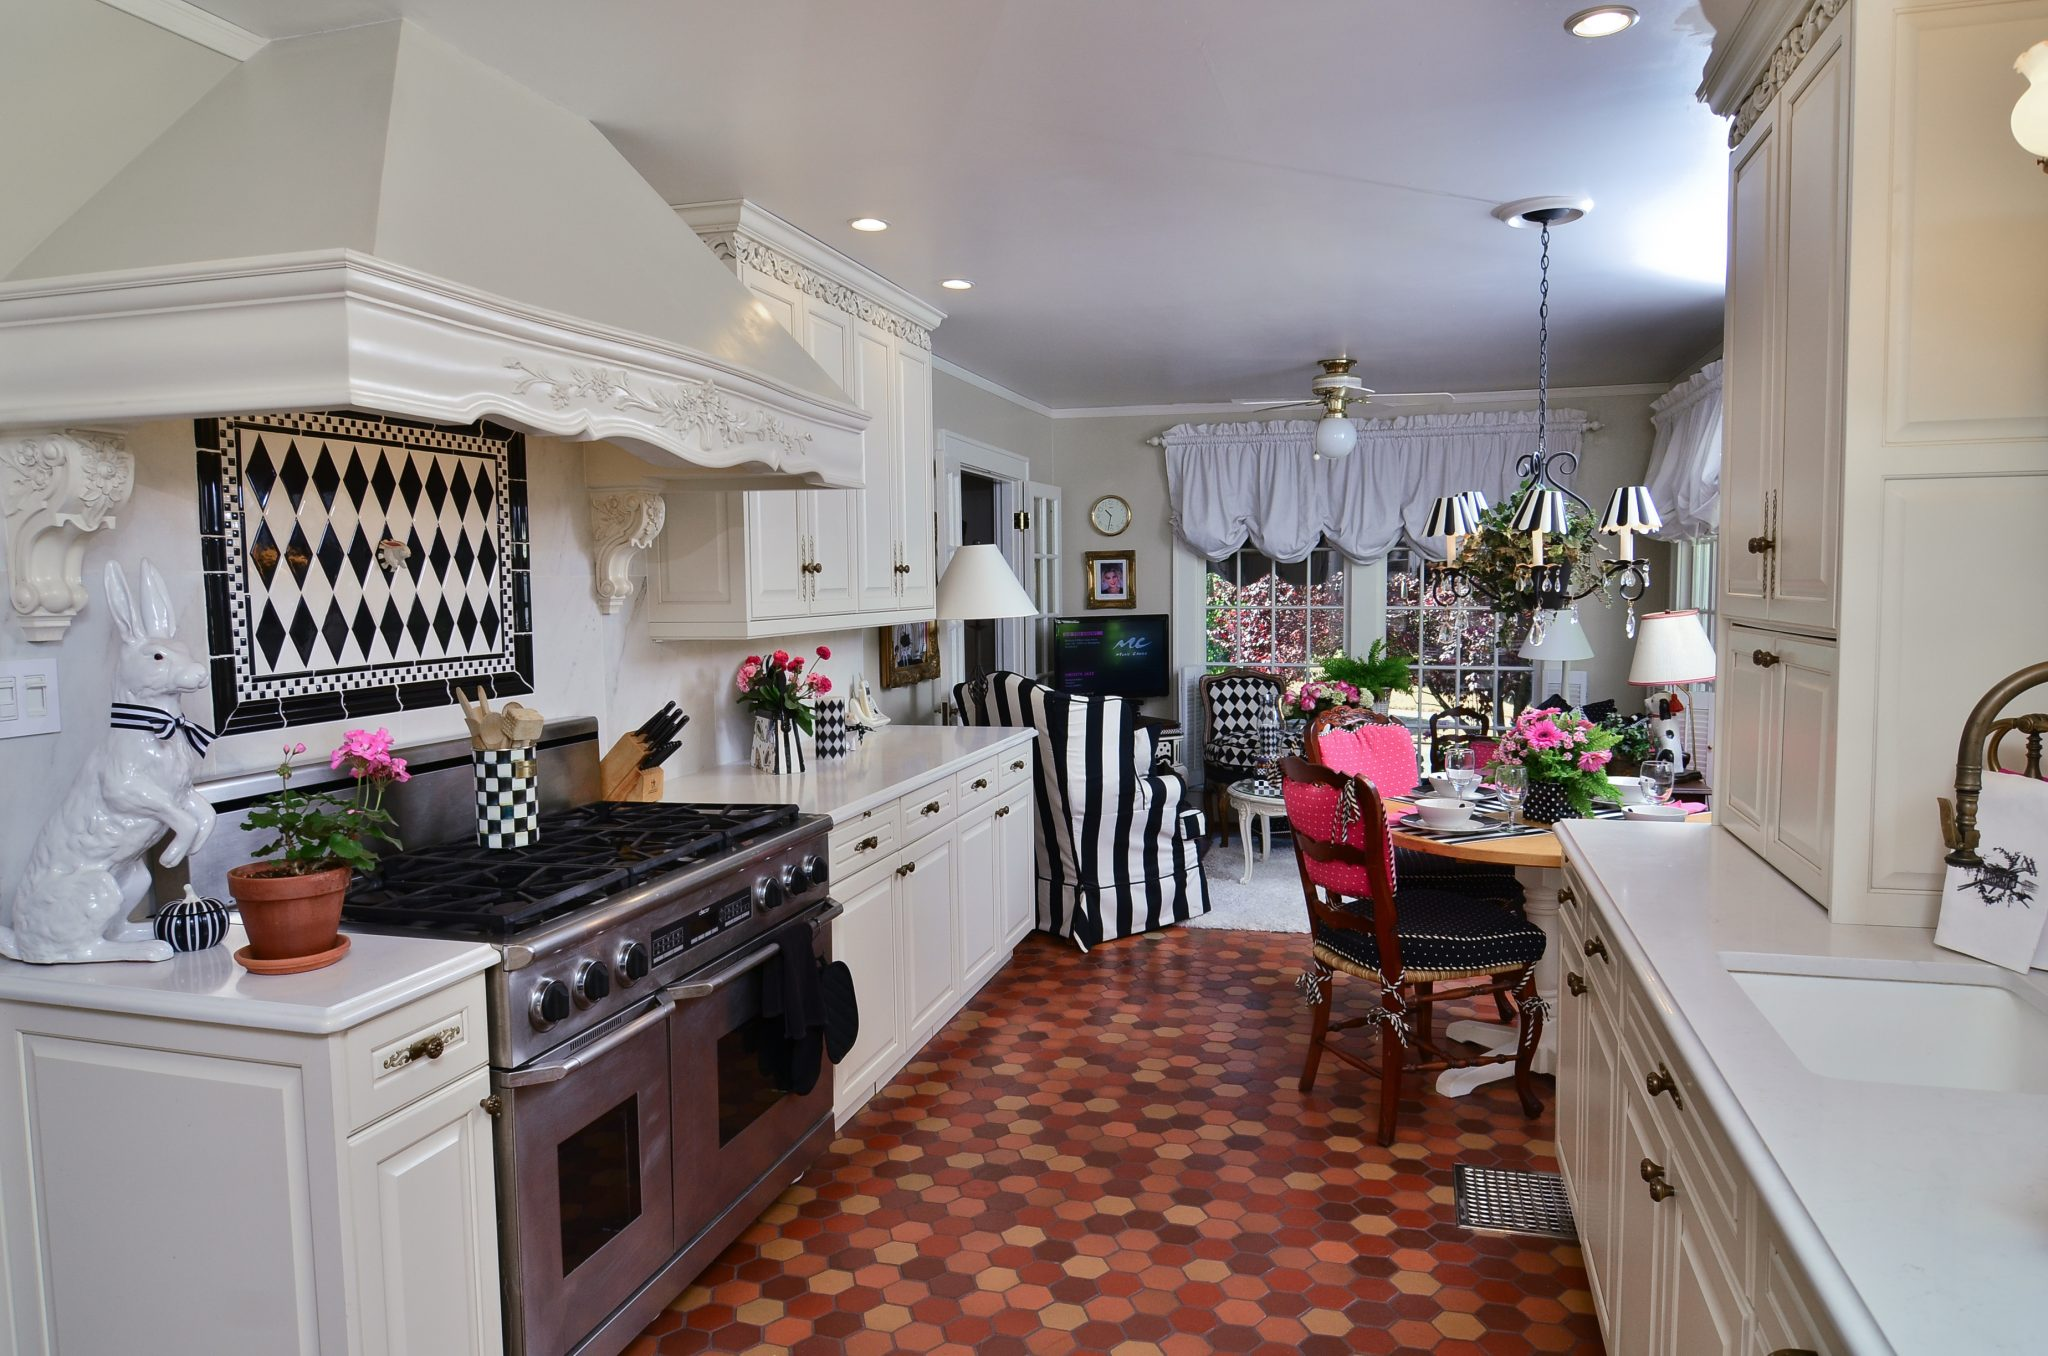 Kitchen layout and design Ovation design-build